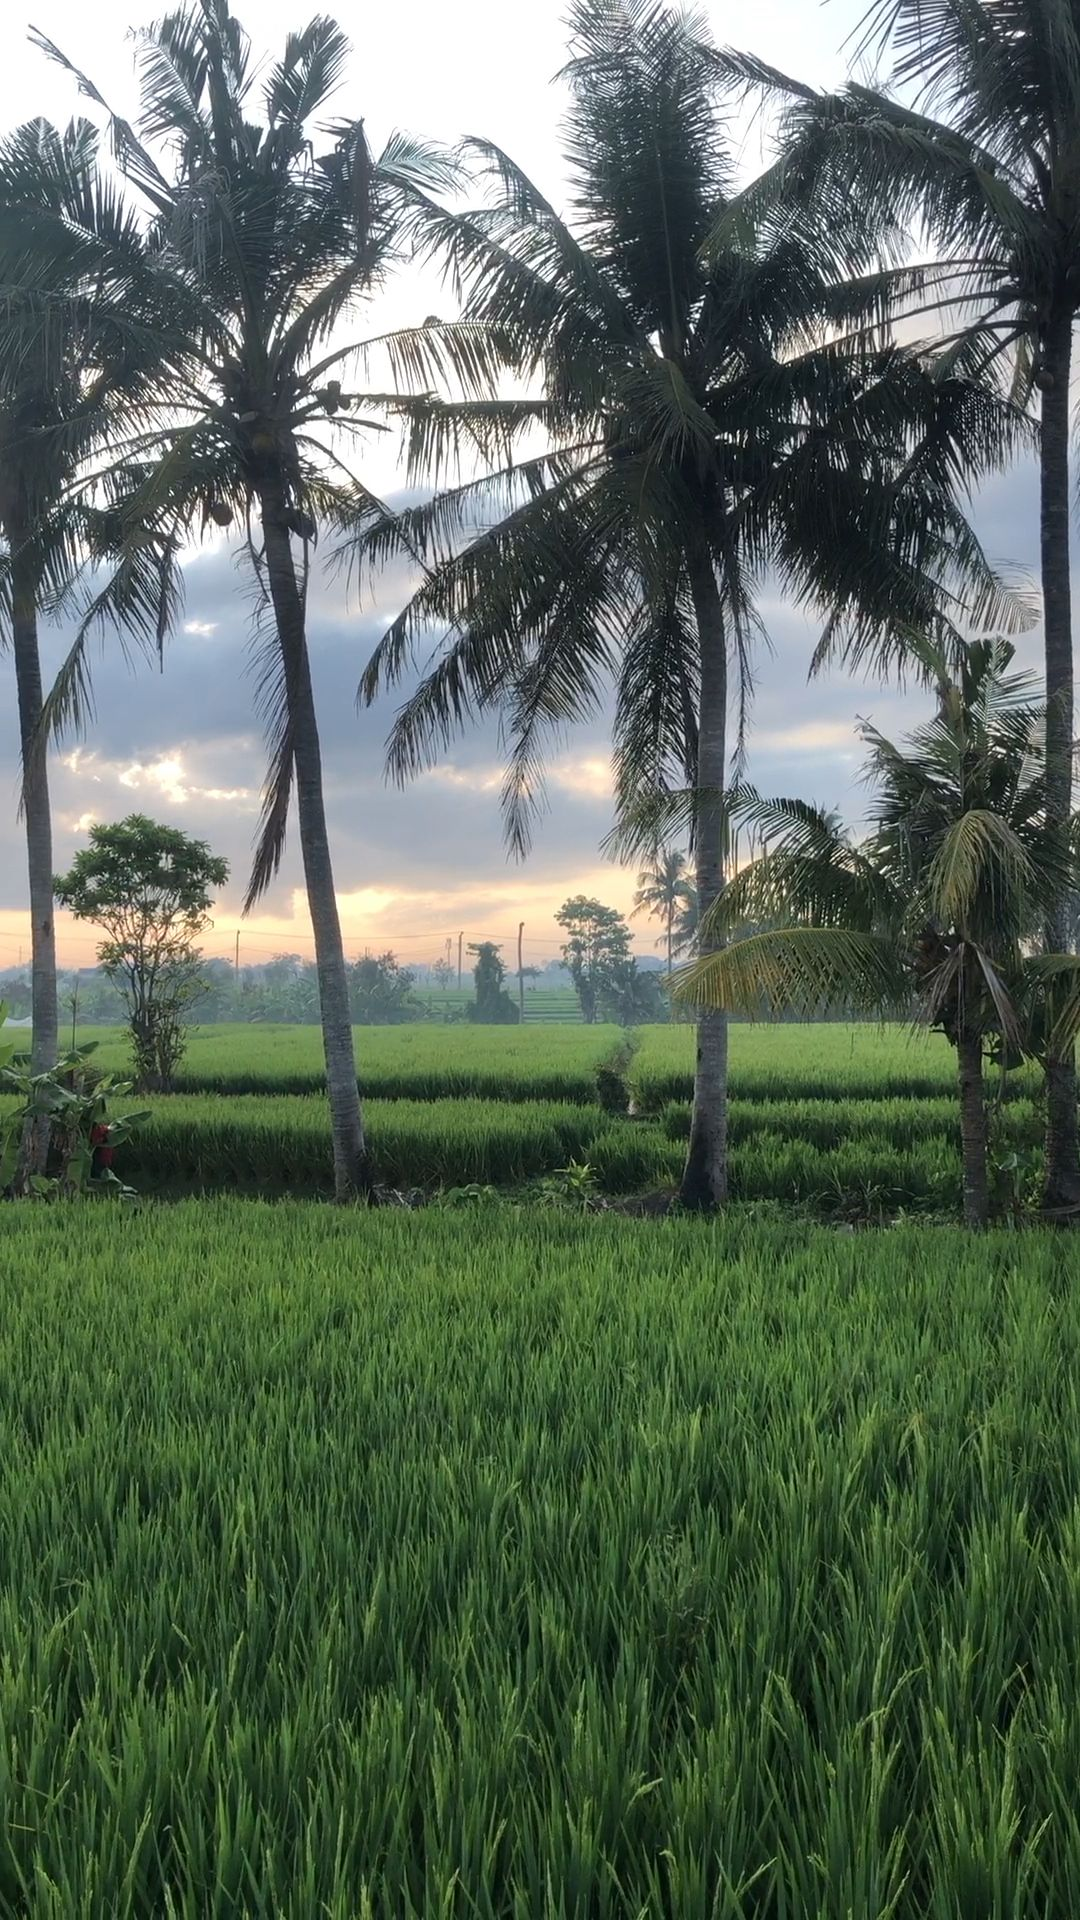 Bali Rice fields!